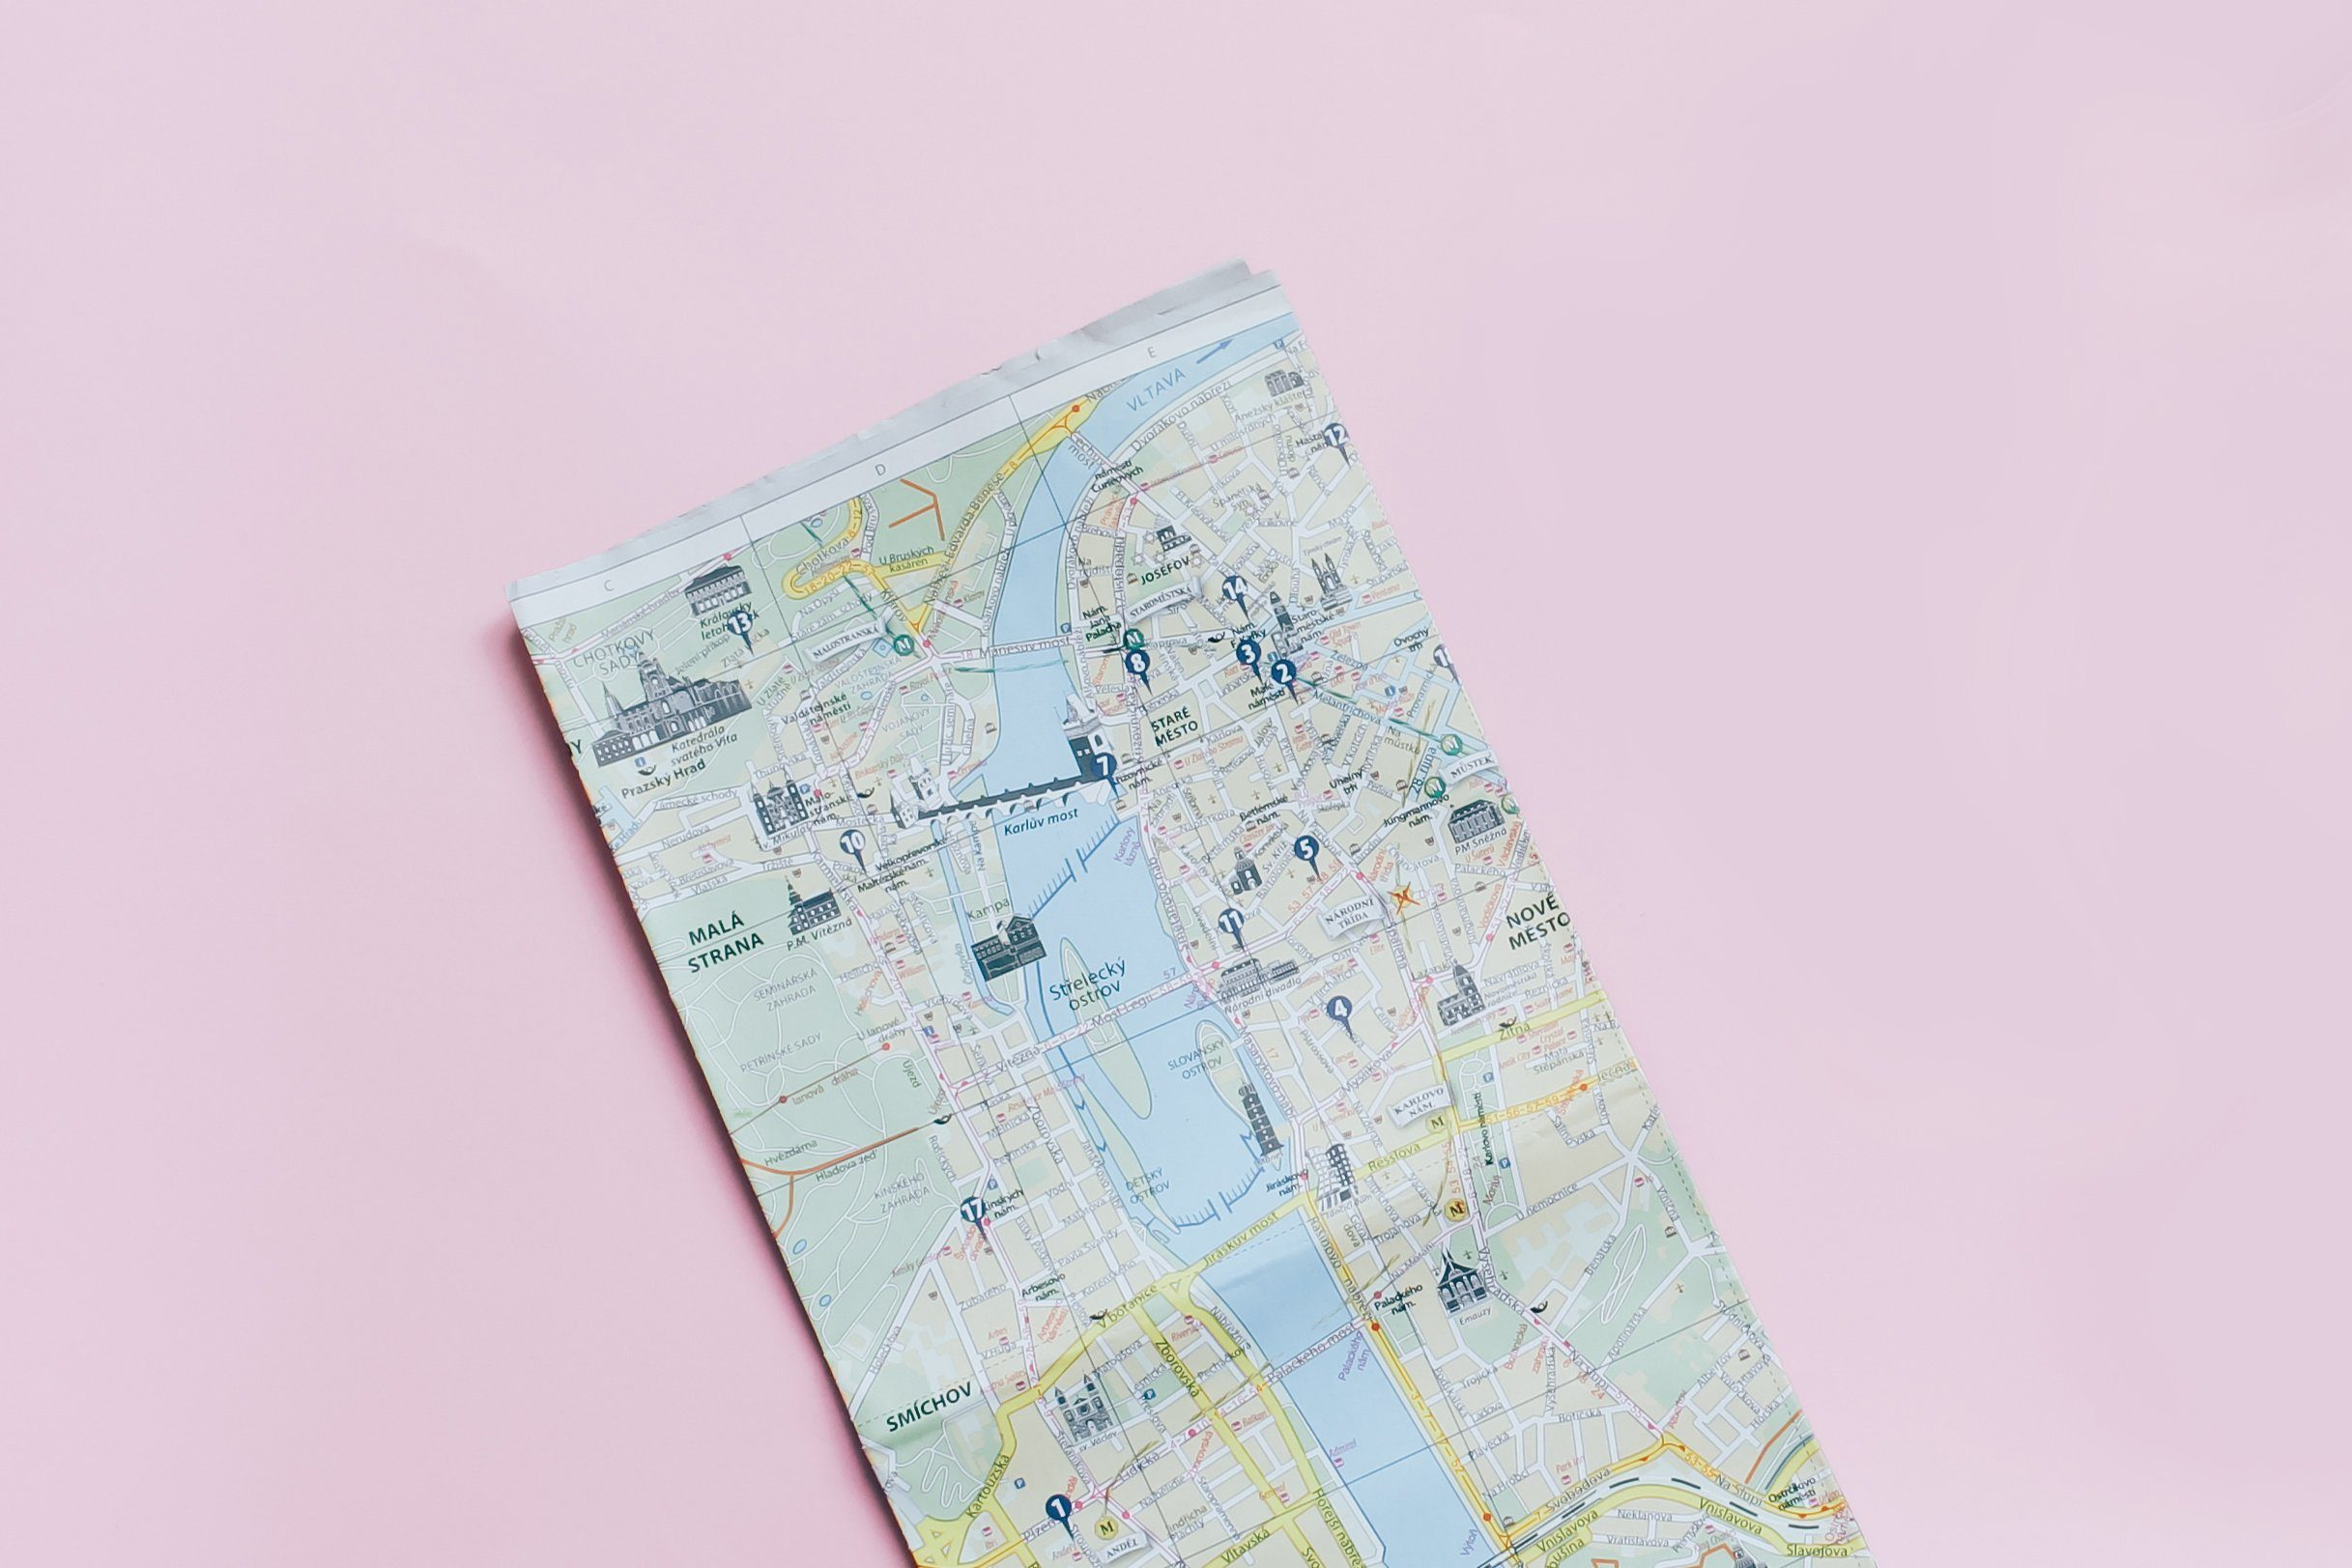 Travel planning concept : map, smartphone, sunglasses and hot coffee cup on pink background, top view with minimal style; Shutterstock ID 524232931; Job (TFH, TOH, RD, BNB, CWM, CM): RD